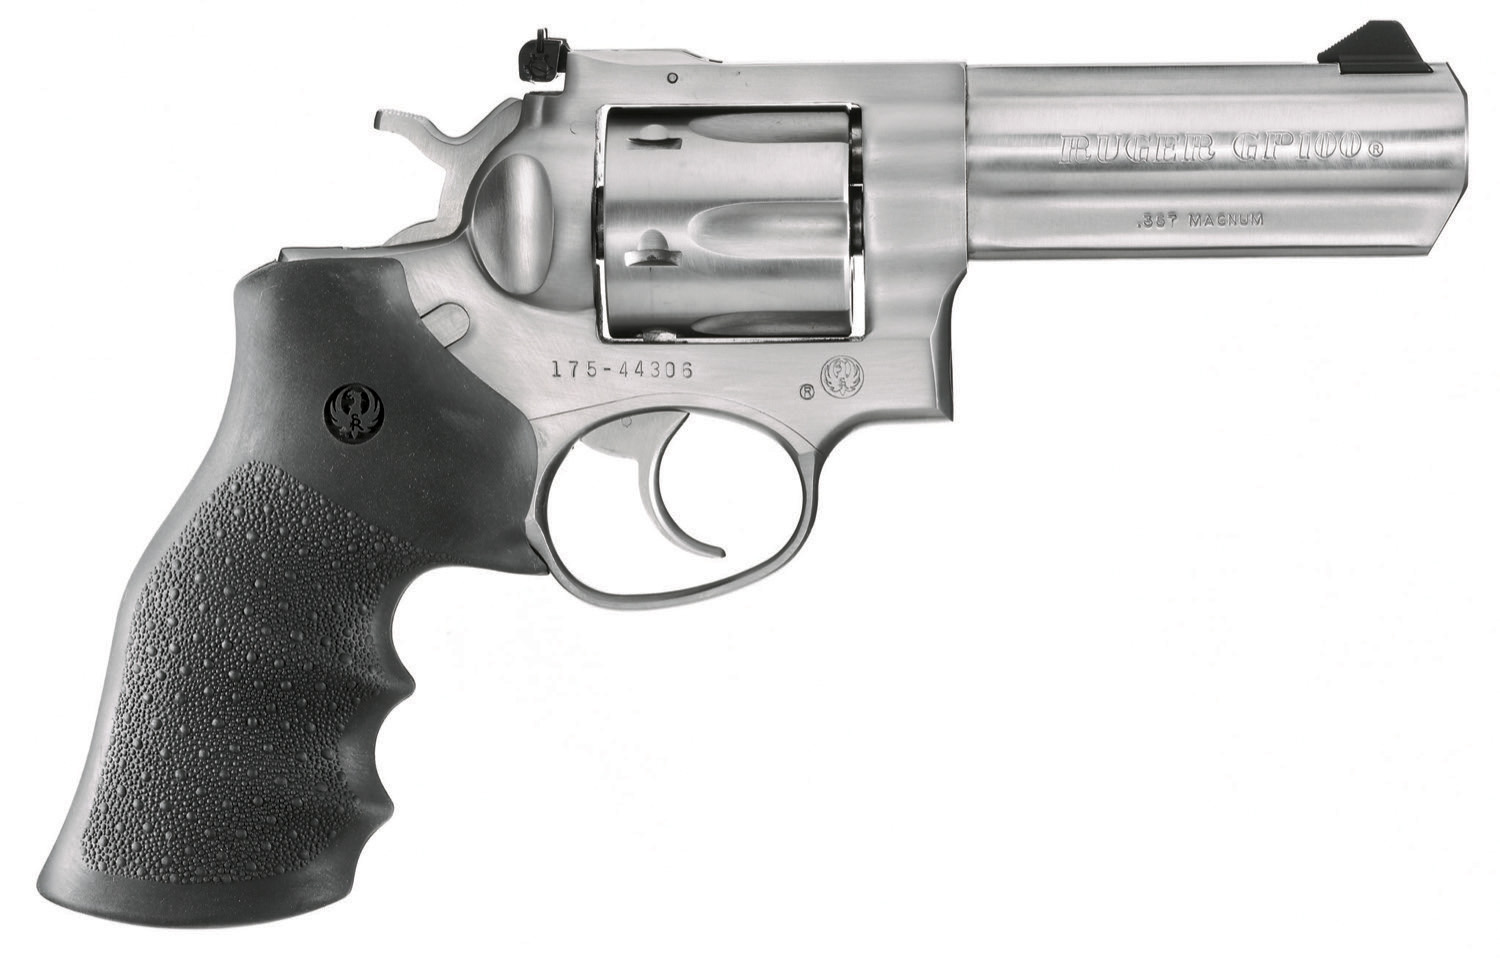 2020 Fourth Place - Ruger GP100 Stainless